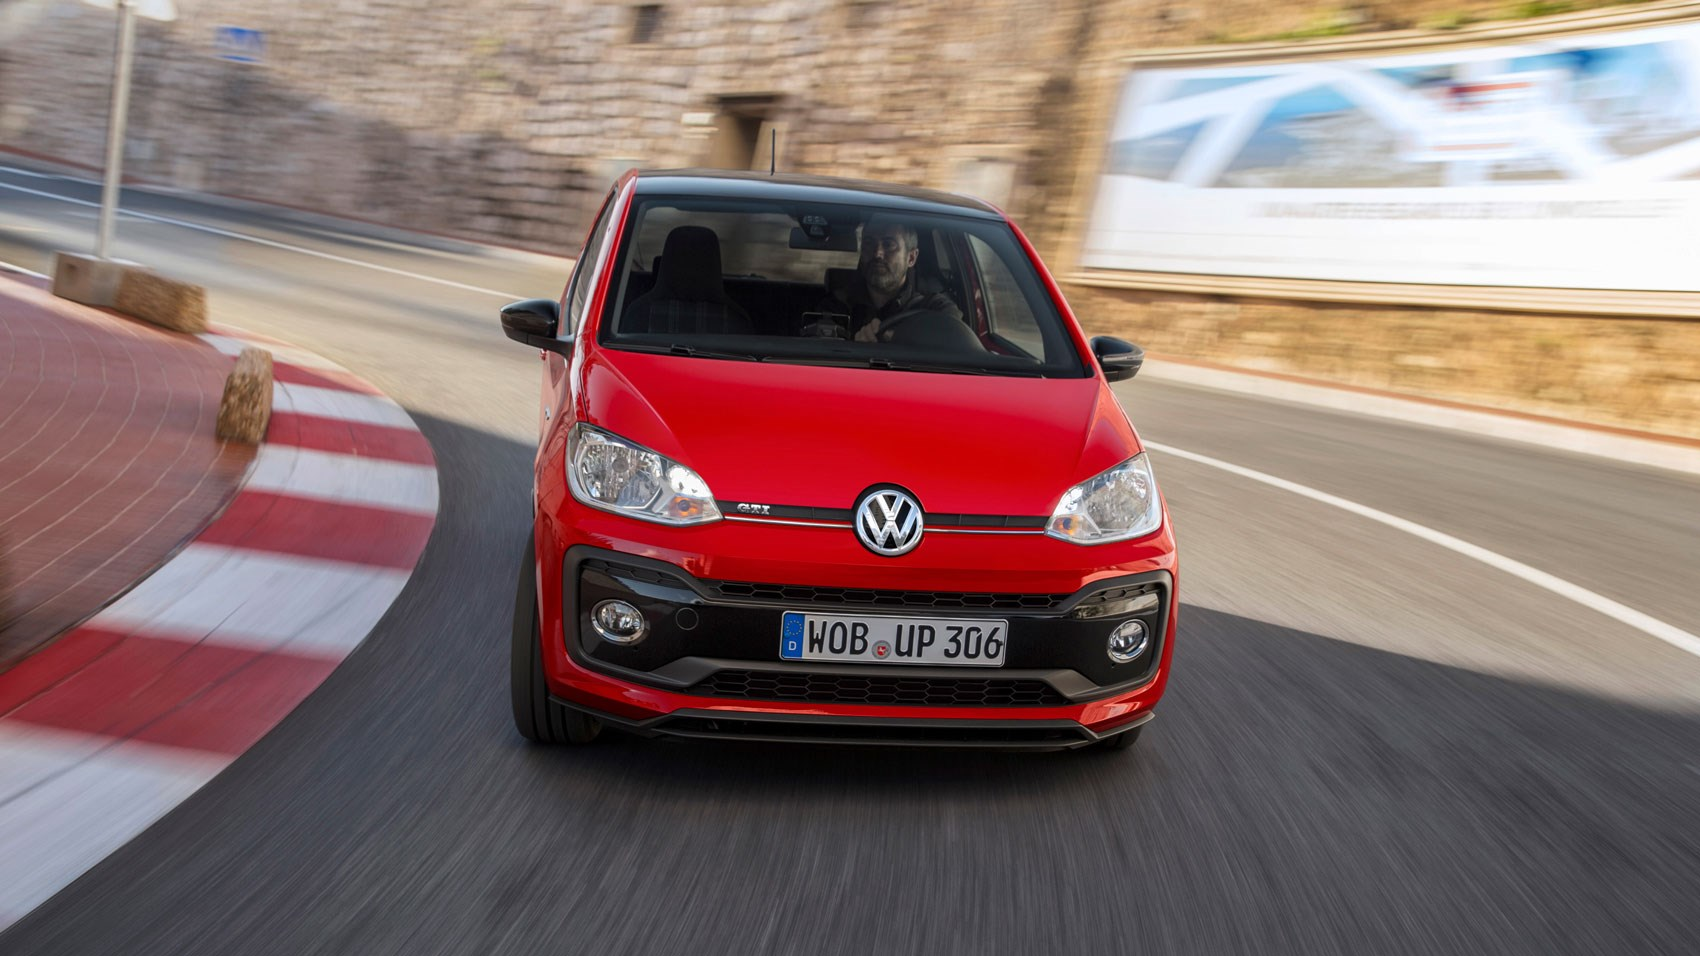 VW Up GTI (2018) review: big performance on a little budget